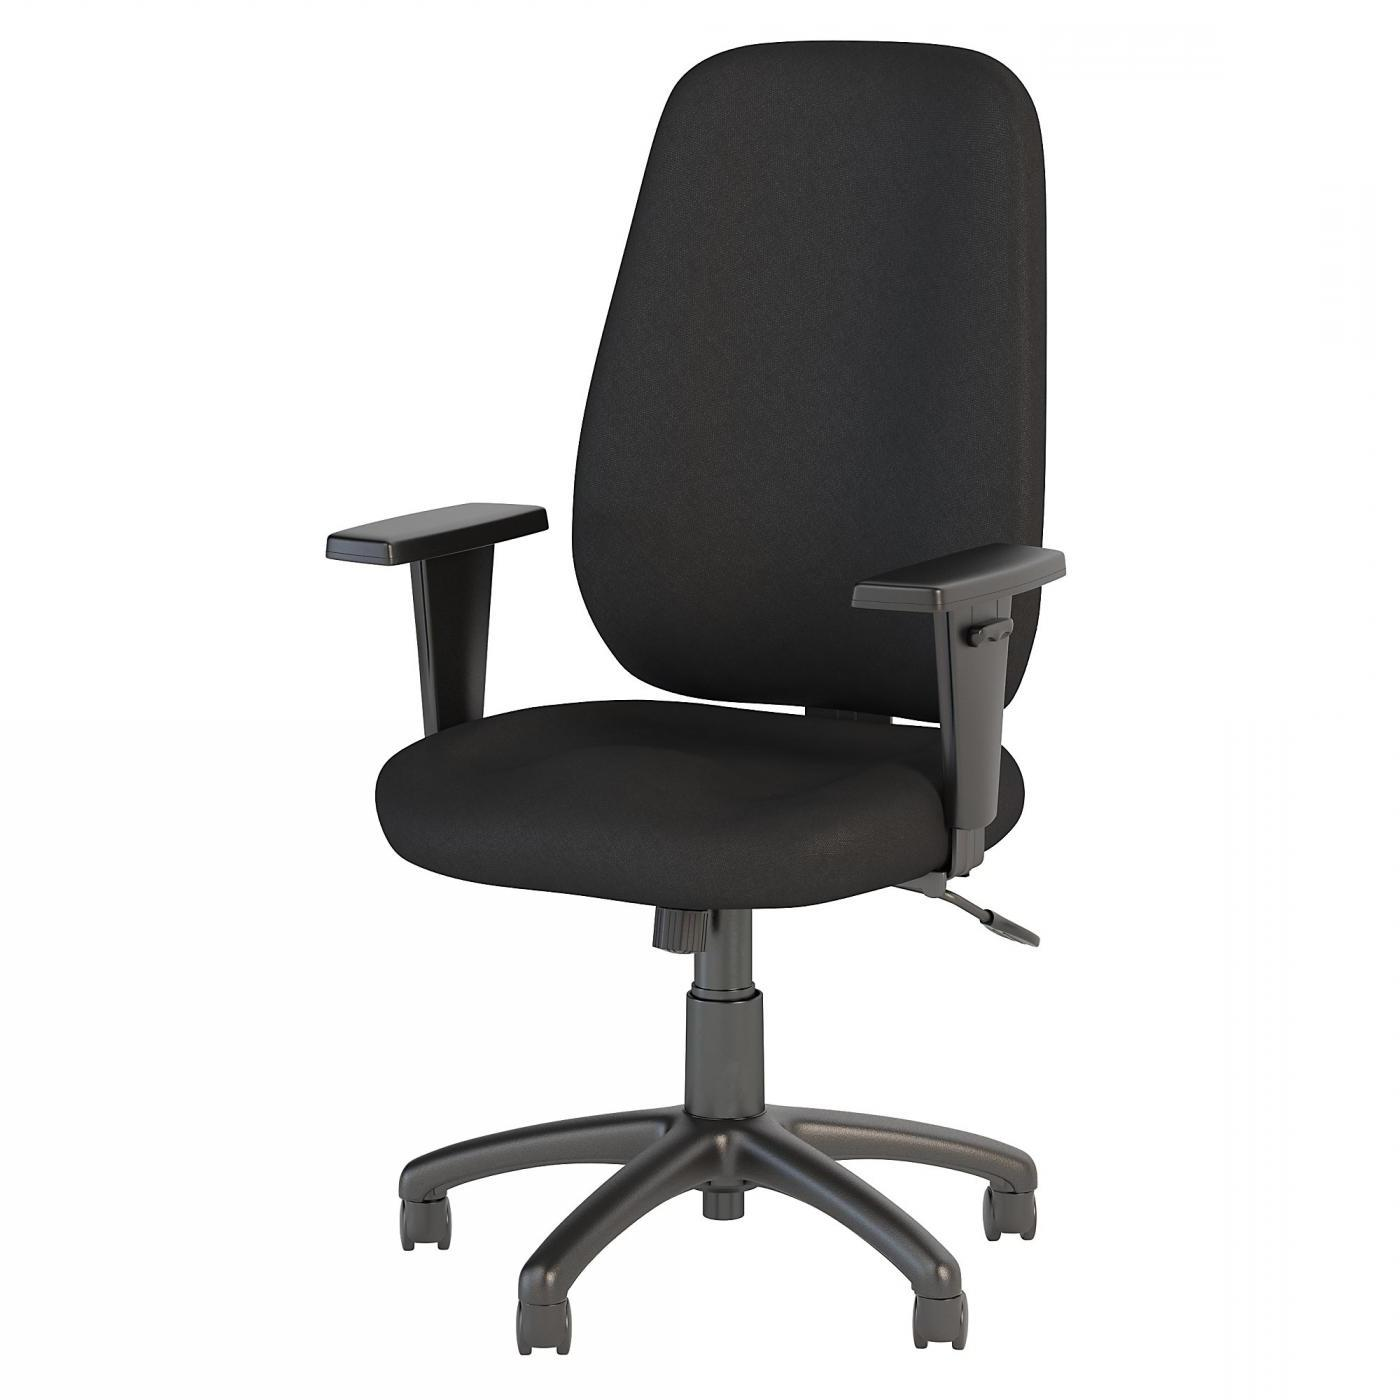 BUSH BUSINESS FURNITURE PROSPER HIGH BACK TASK CHAIR. FREE SHIPPING.